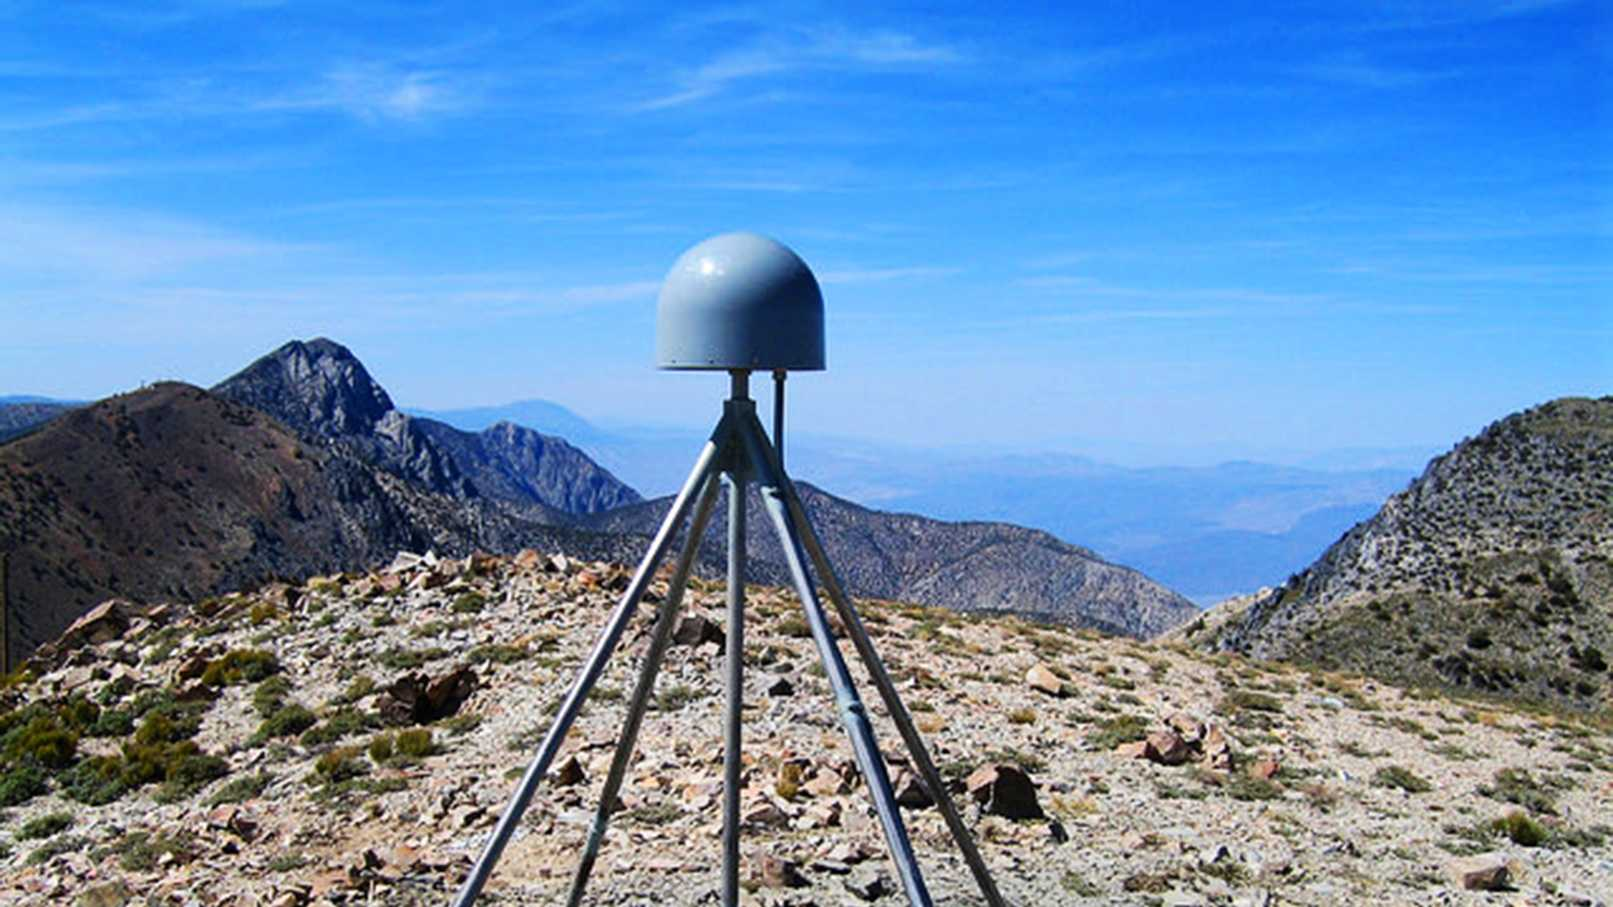 Plate Boundary Observatory GPS station P466, located in the Inyo Mountains near Lone Pine, California. P466 is mounted on a deep-drilled braced monument, and its displacement data were used in the determination of water loading changes in the western U.S.